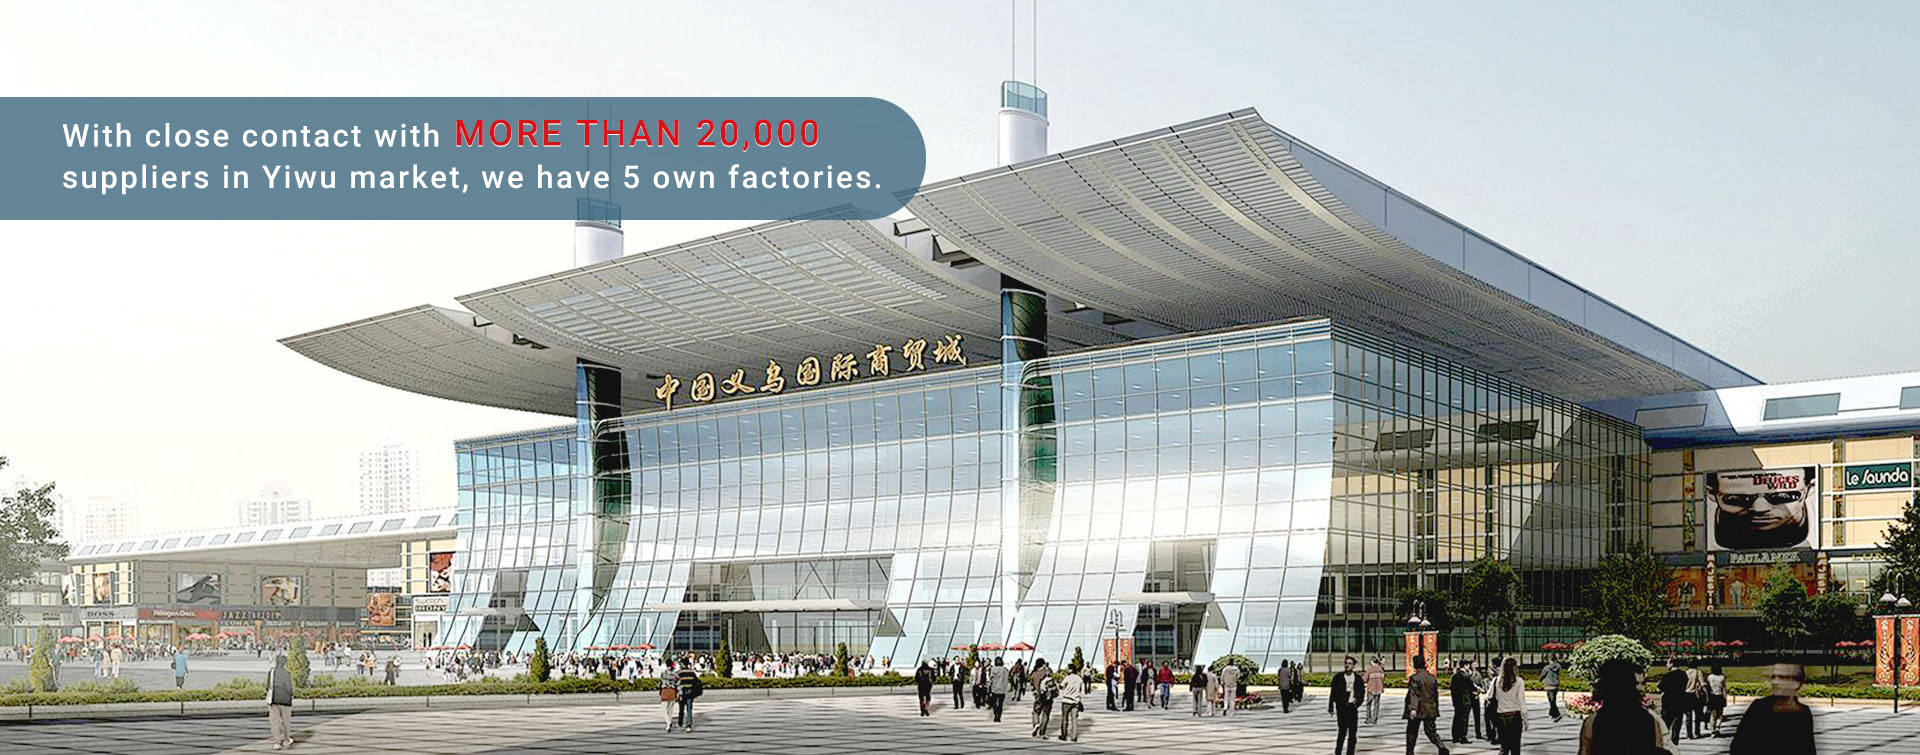 With close contact with more than 20,000 suppliers in Yiwu market, we have 5 own factories.